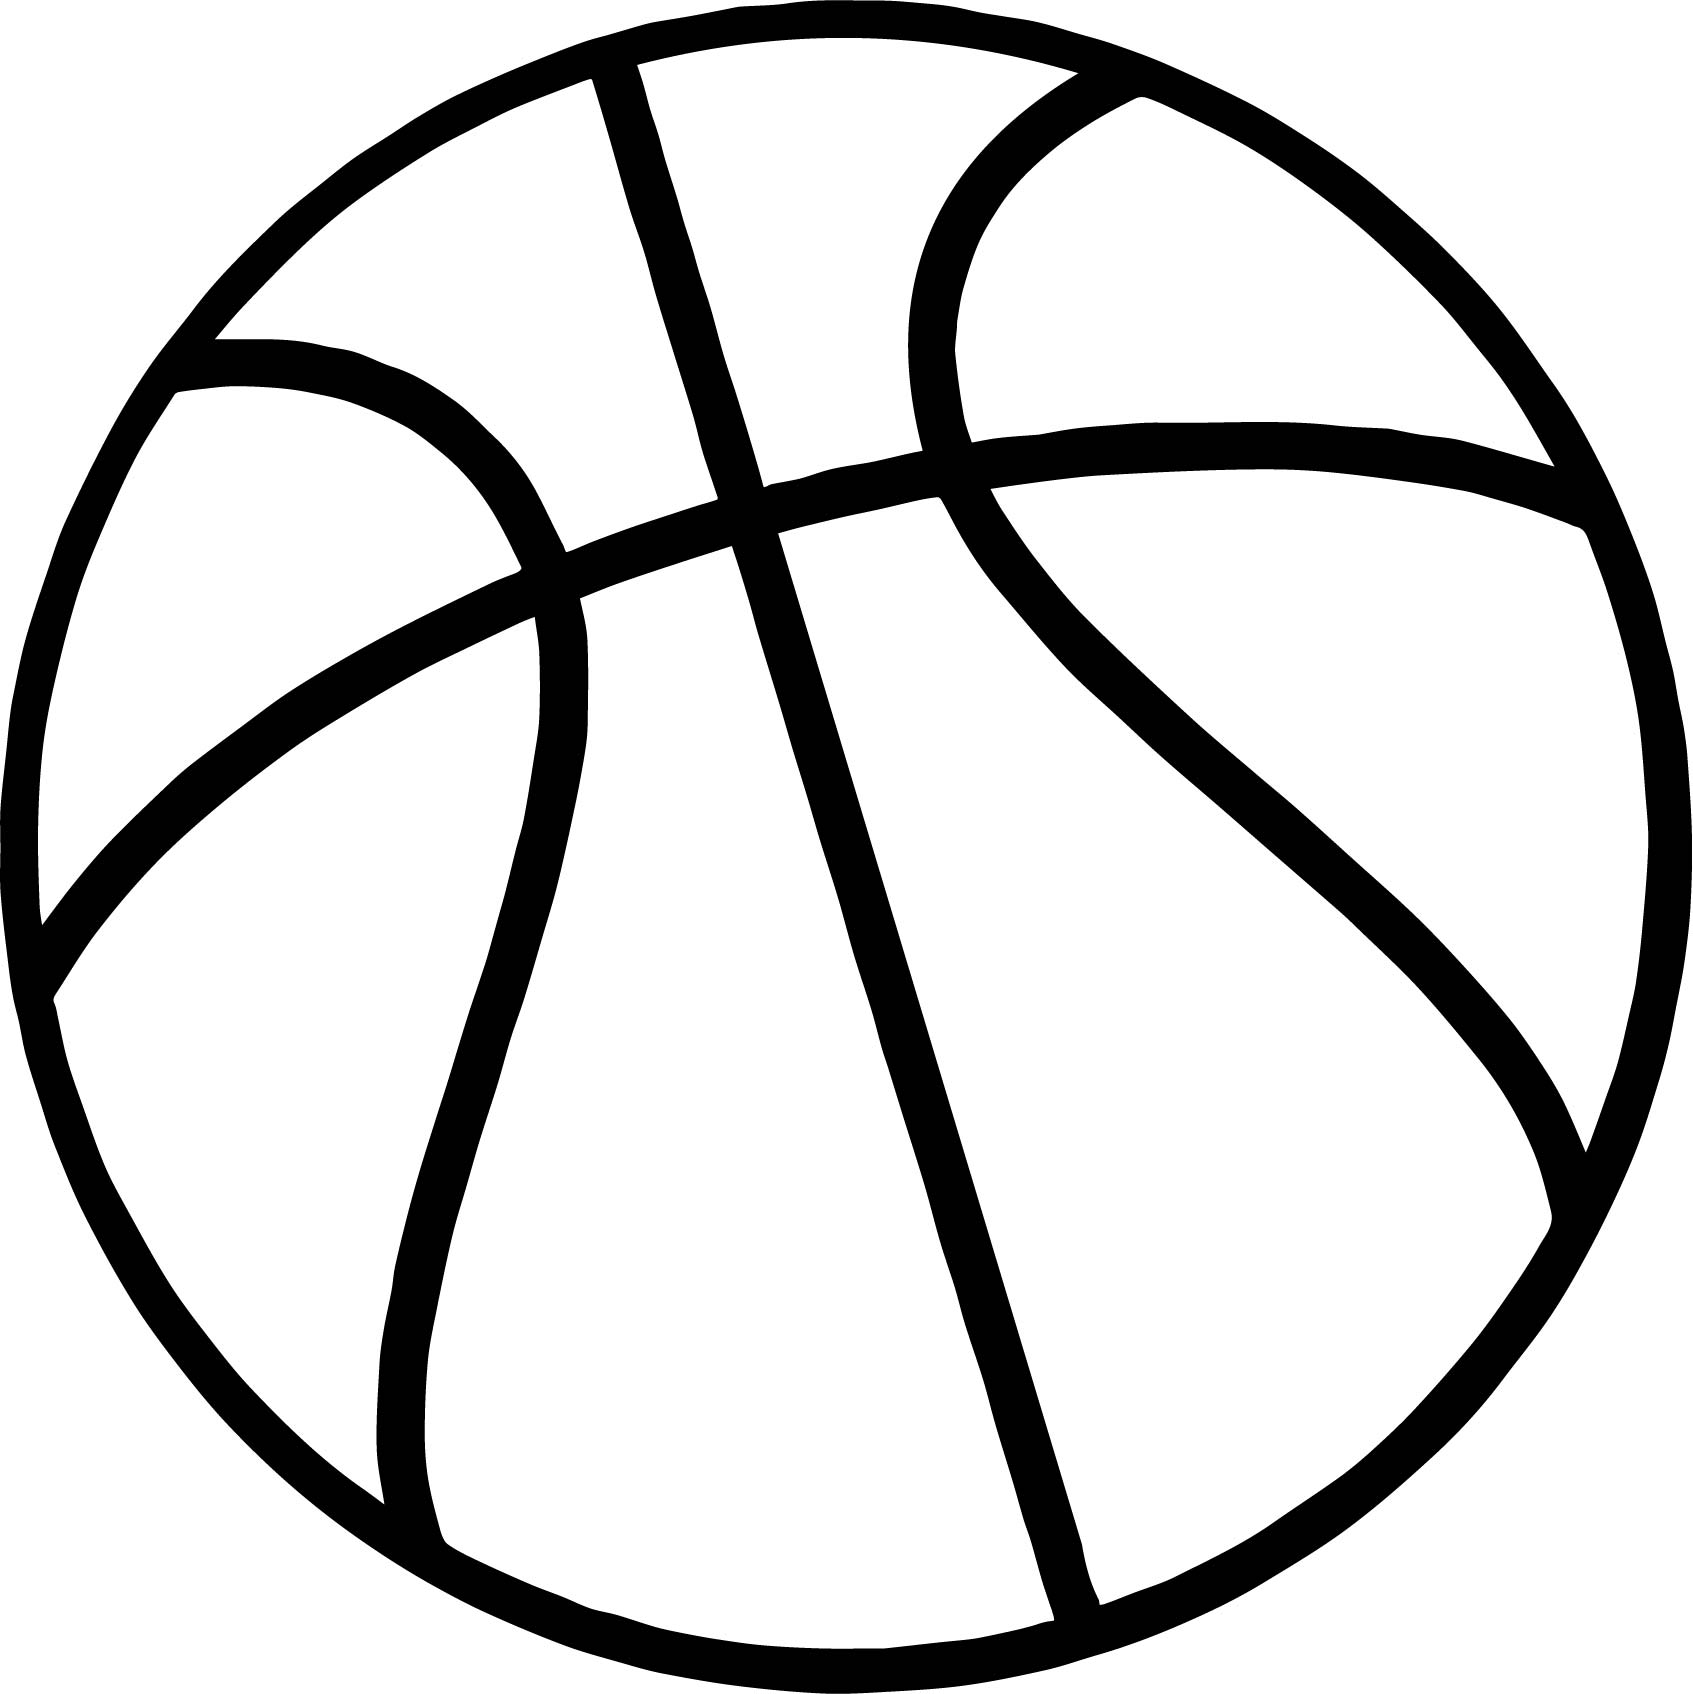 ball coloring pages - photo#18